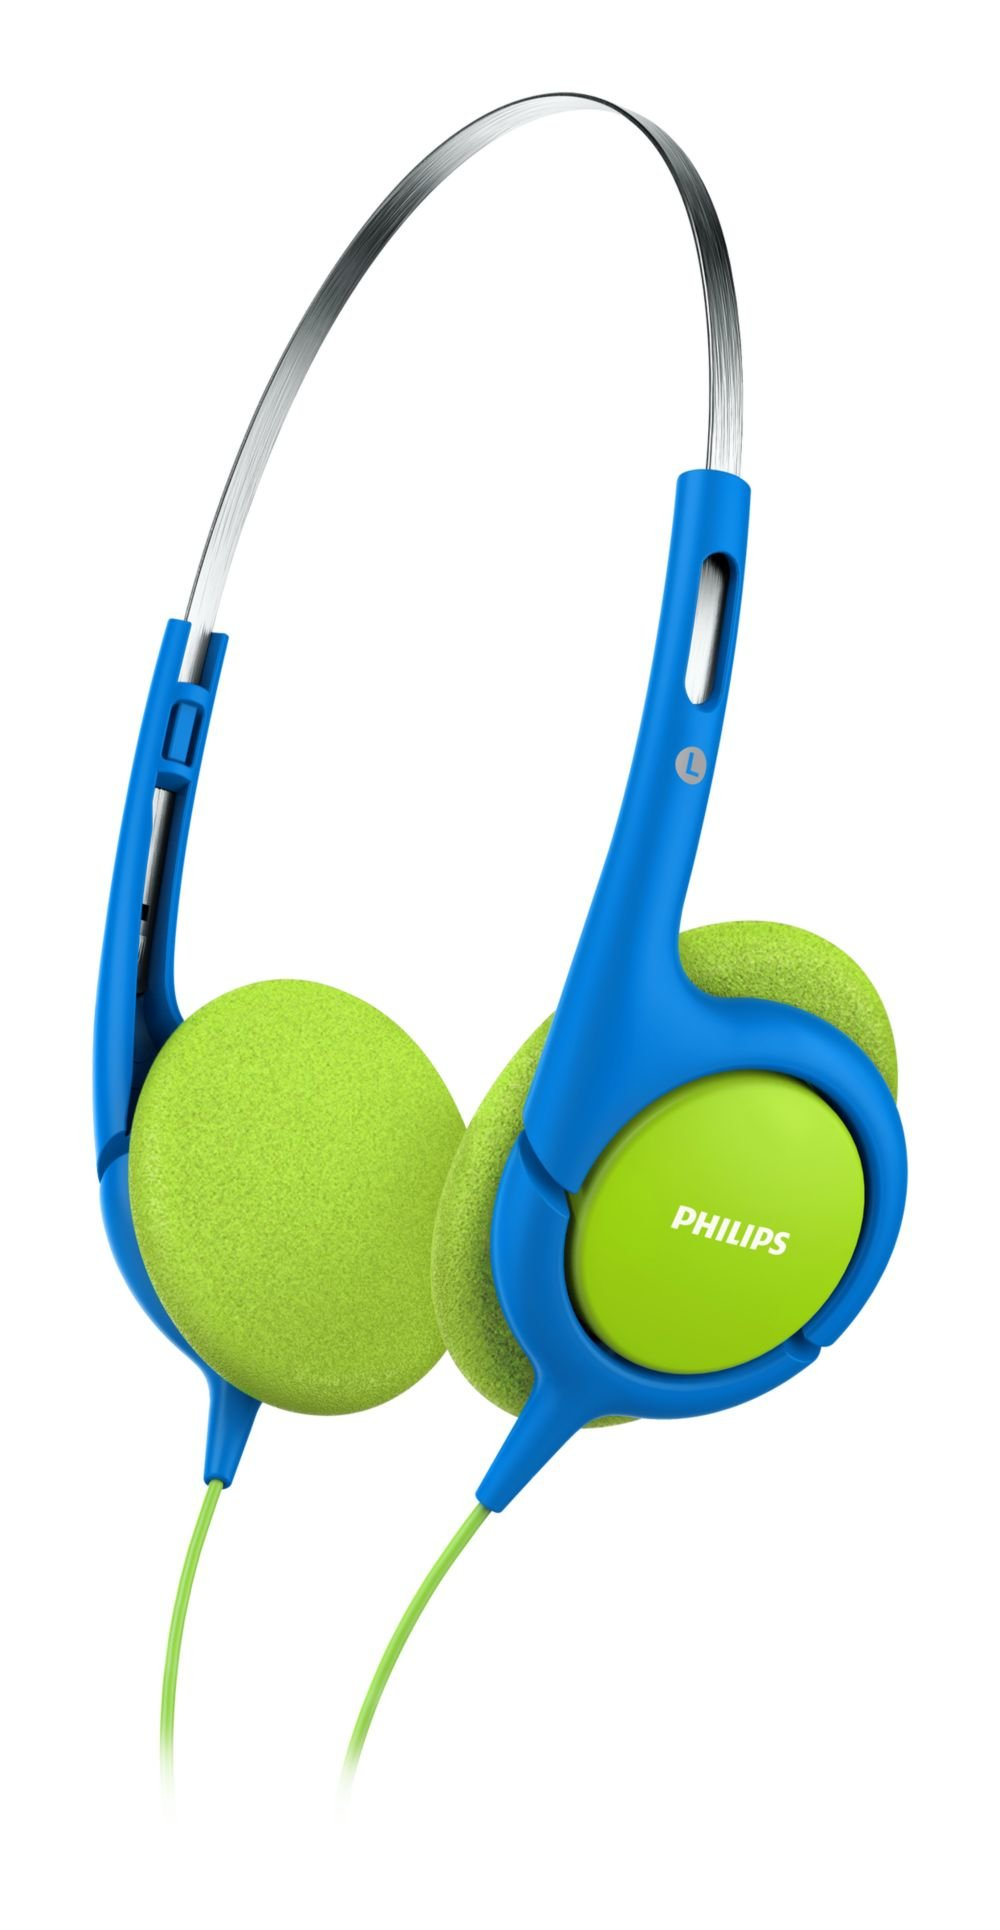 Philips SHK1030/27 Headband Headphones for Kids (Discontinued by Manufacturer) by Philips